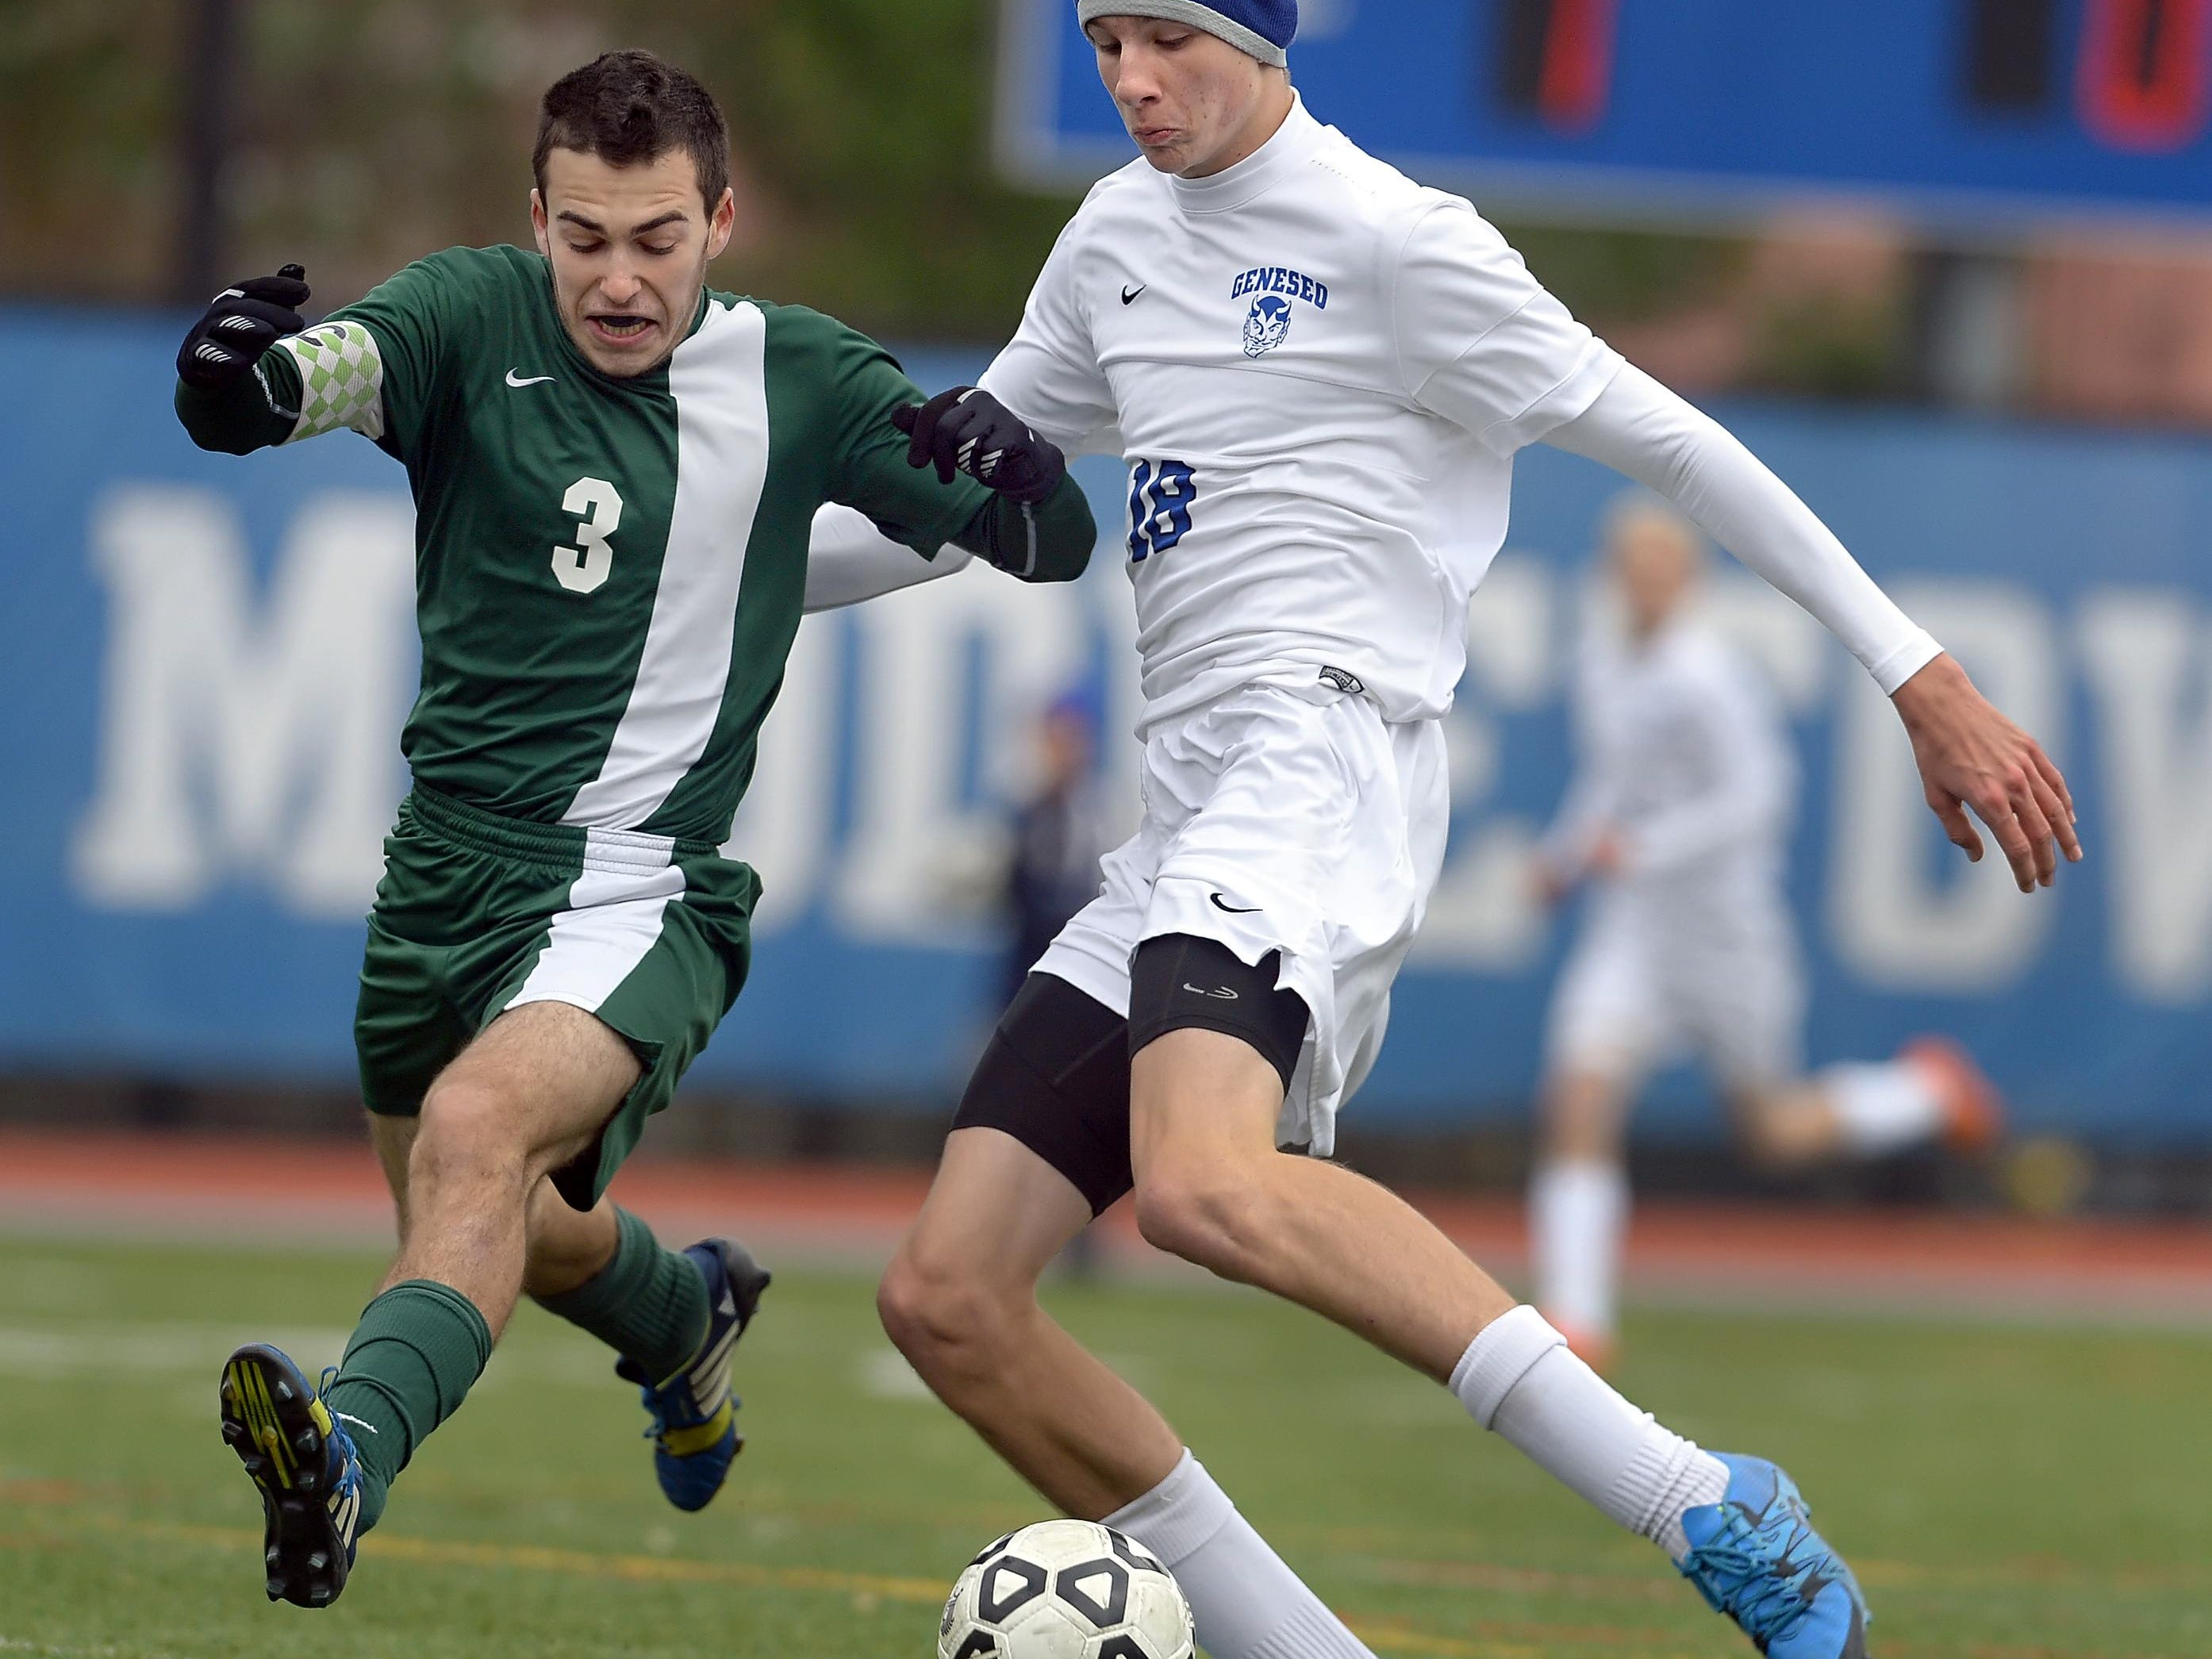 Geneseo's Kyle Rollins, right, takes a shot on goal while defended by Schecter's Ben Goldberg during a NYSPHSAA Boys Soccer Championships Class C semifinal played at Middletown High School on Saturday, November 14, 2015. Geneseo's season ends with a 1-0 loss to Schecter-I.